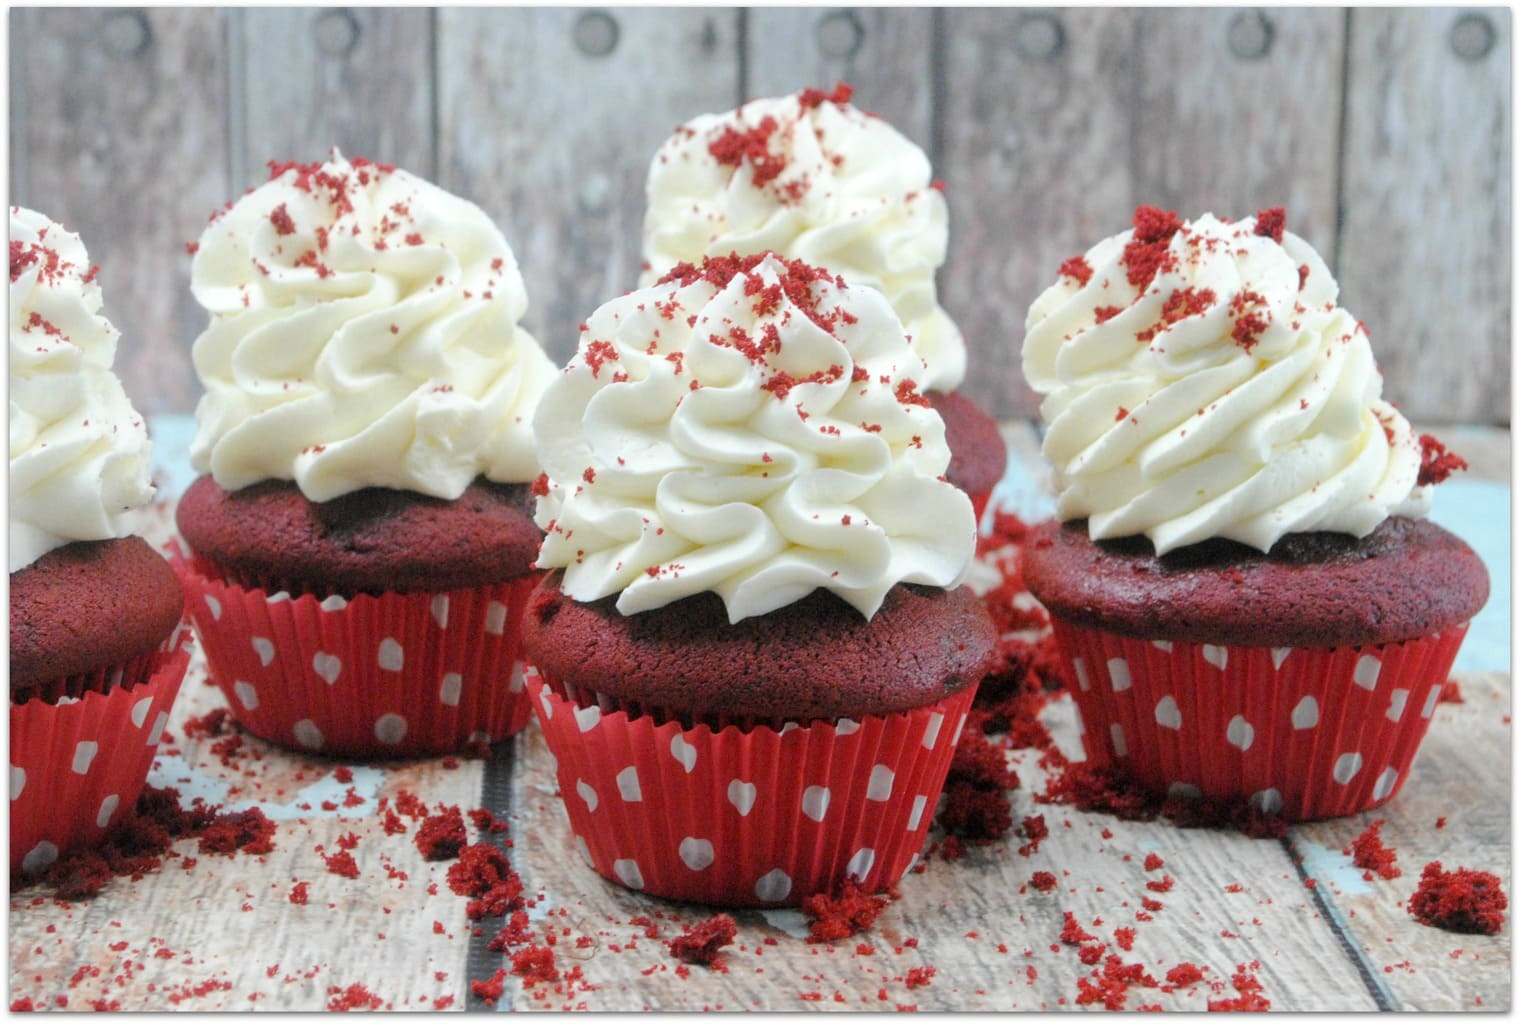 This classic red velvet cupcake recipe is the deliciousness of red velvet cake in a smaller portion, perfect for a party! One thing I love about cupcakes is that you don't need a plate and fork. When I'm bringing a dessert to a party or school event, I don't want to have to mess with bringing plates and forks, too. Everyone will love this decadent dessert recipe, and you will love that it's easy! No one wants to be in the kitchen for hours, including me!